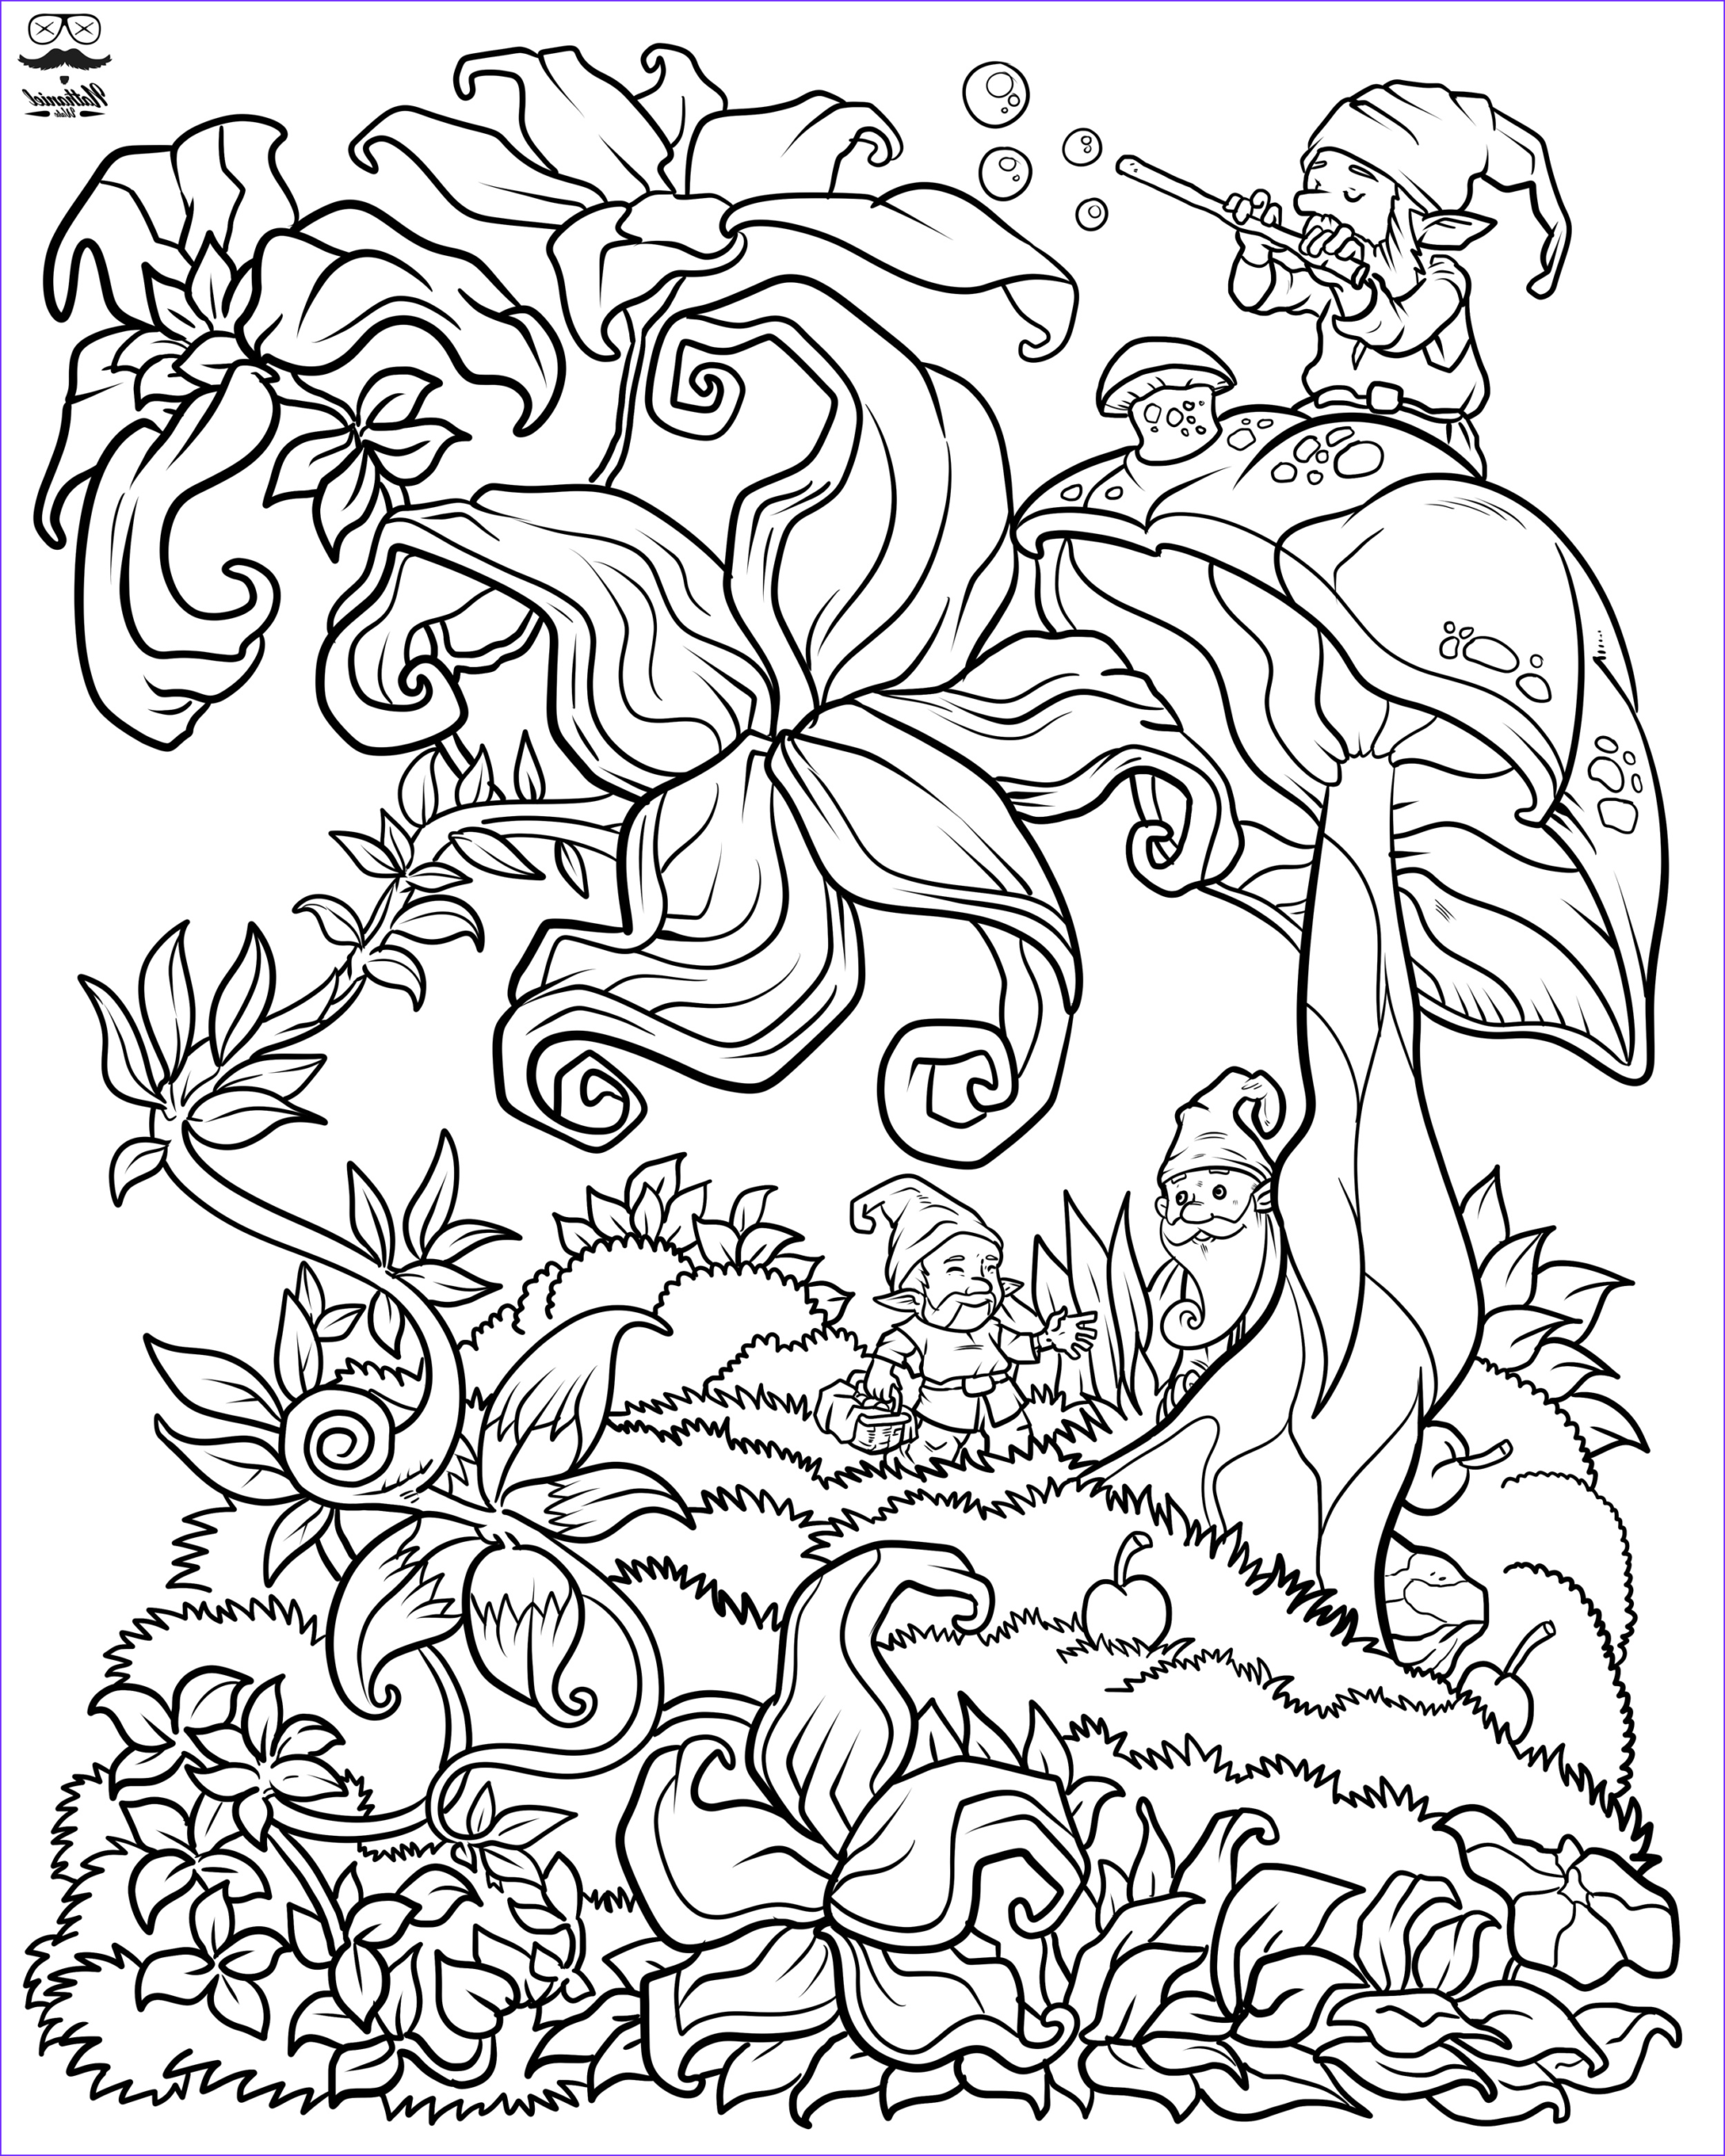 Adult Coloring Images Beautiful Photography Floral Fantasy Digital Version Adult Coloring Book